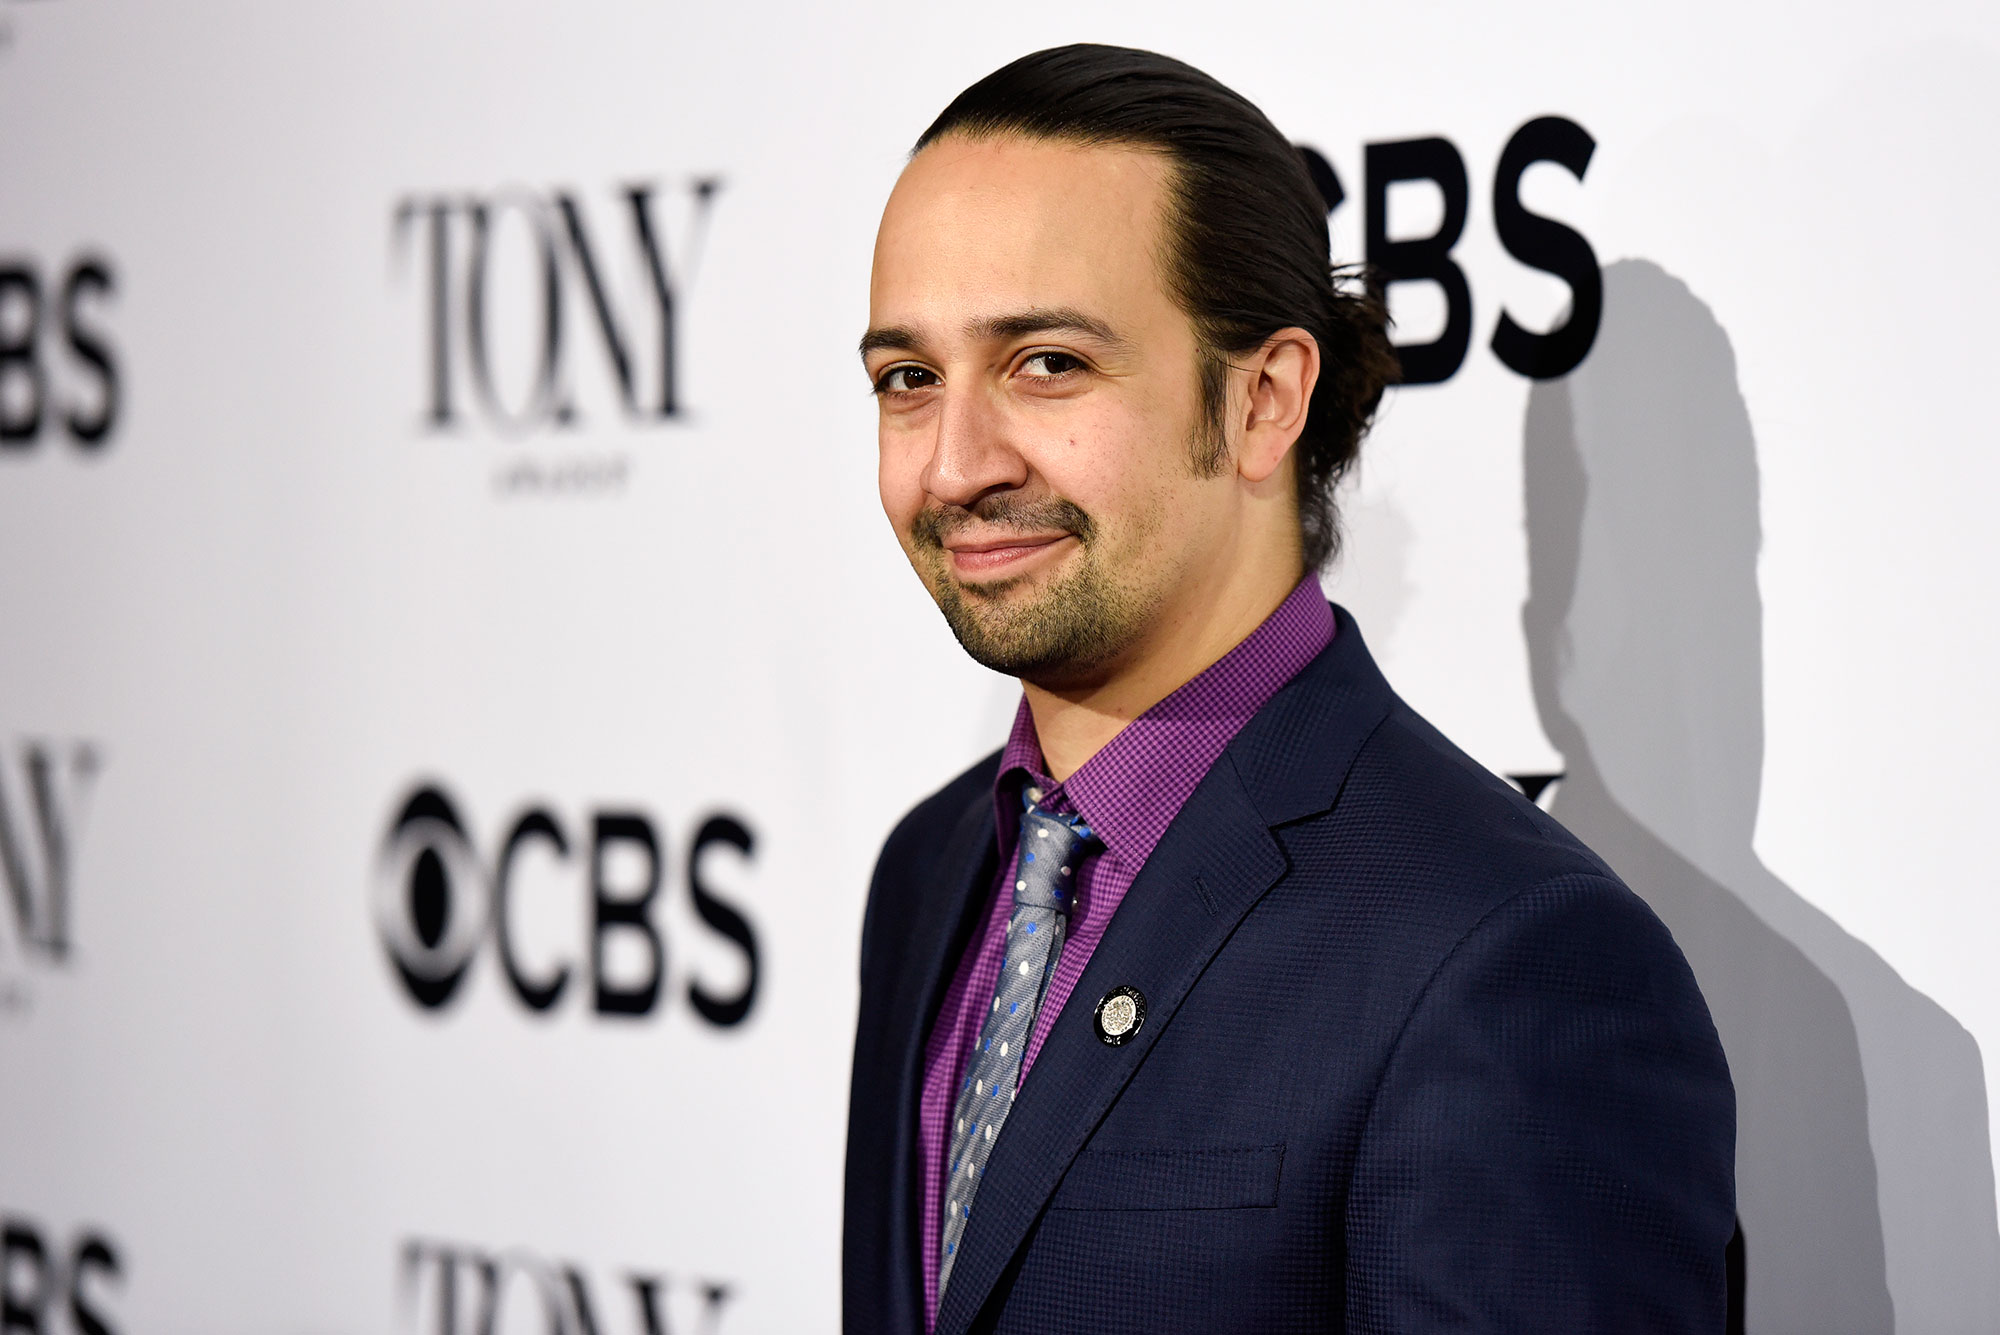 Lin-Manuel Miranda Teachers Before Fame - Miranda's hit musical In the Heights debuted on Broadway in March 2008 and eventually won four Tony Awards and a Grammy Award. As the playwright was busy working on Broadway shows, he was also teaching English at NYC's Hunter College High School, his alma mater.